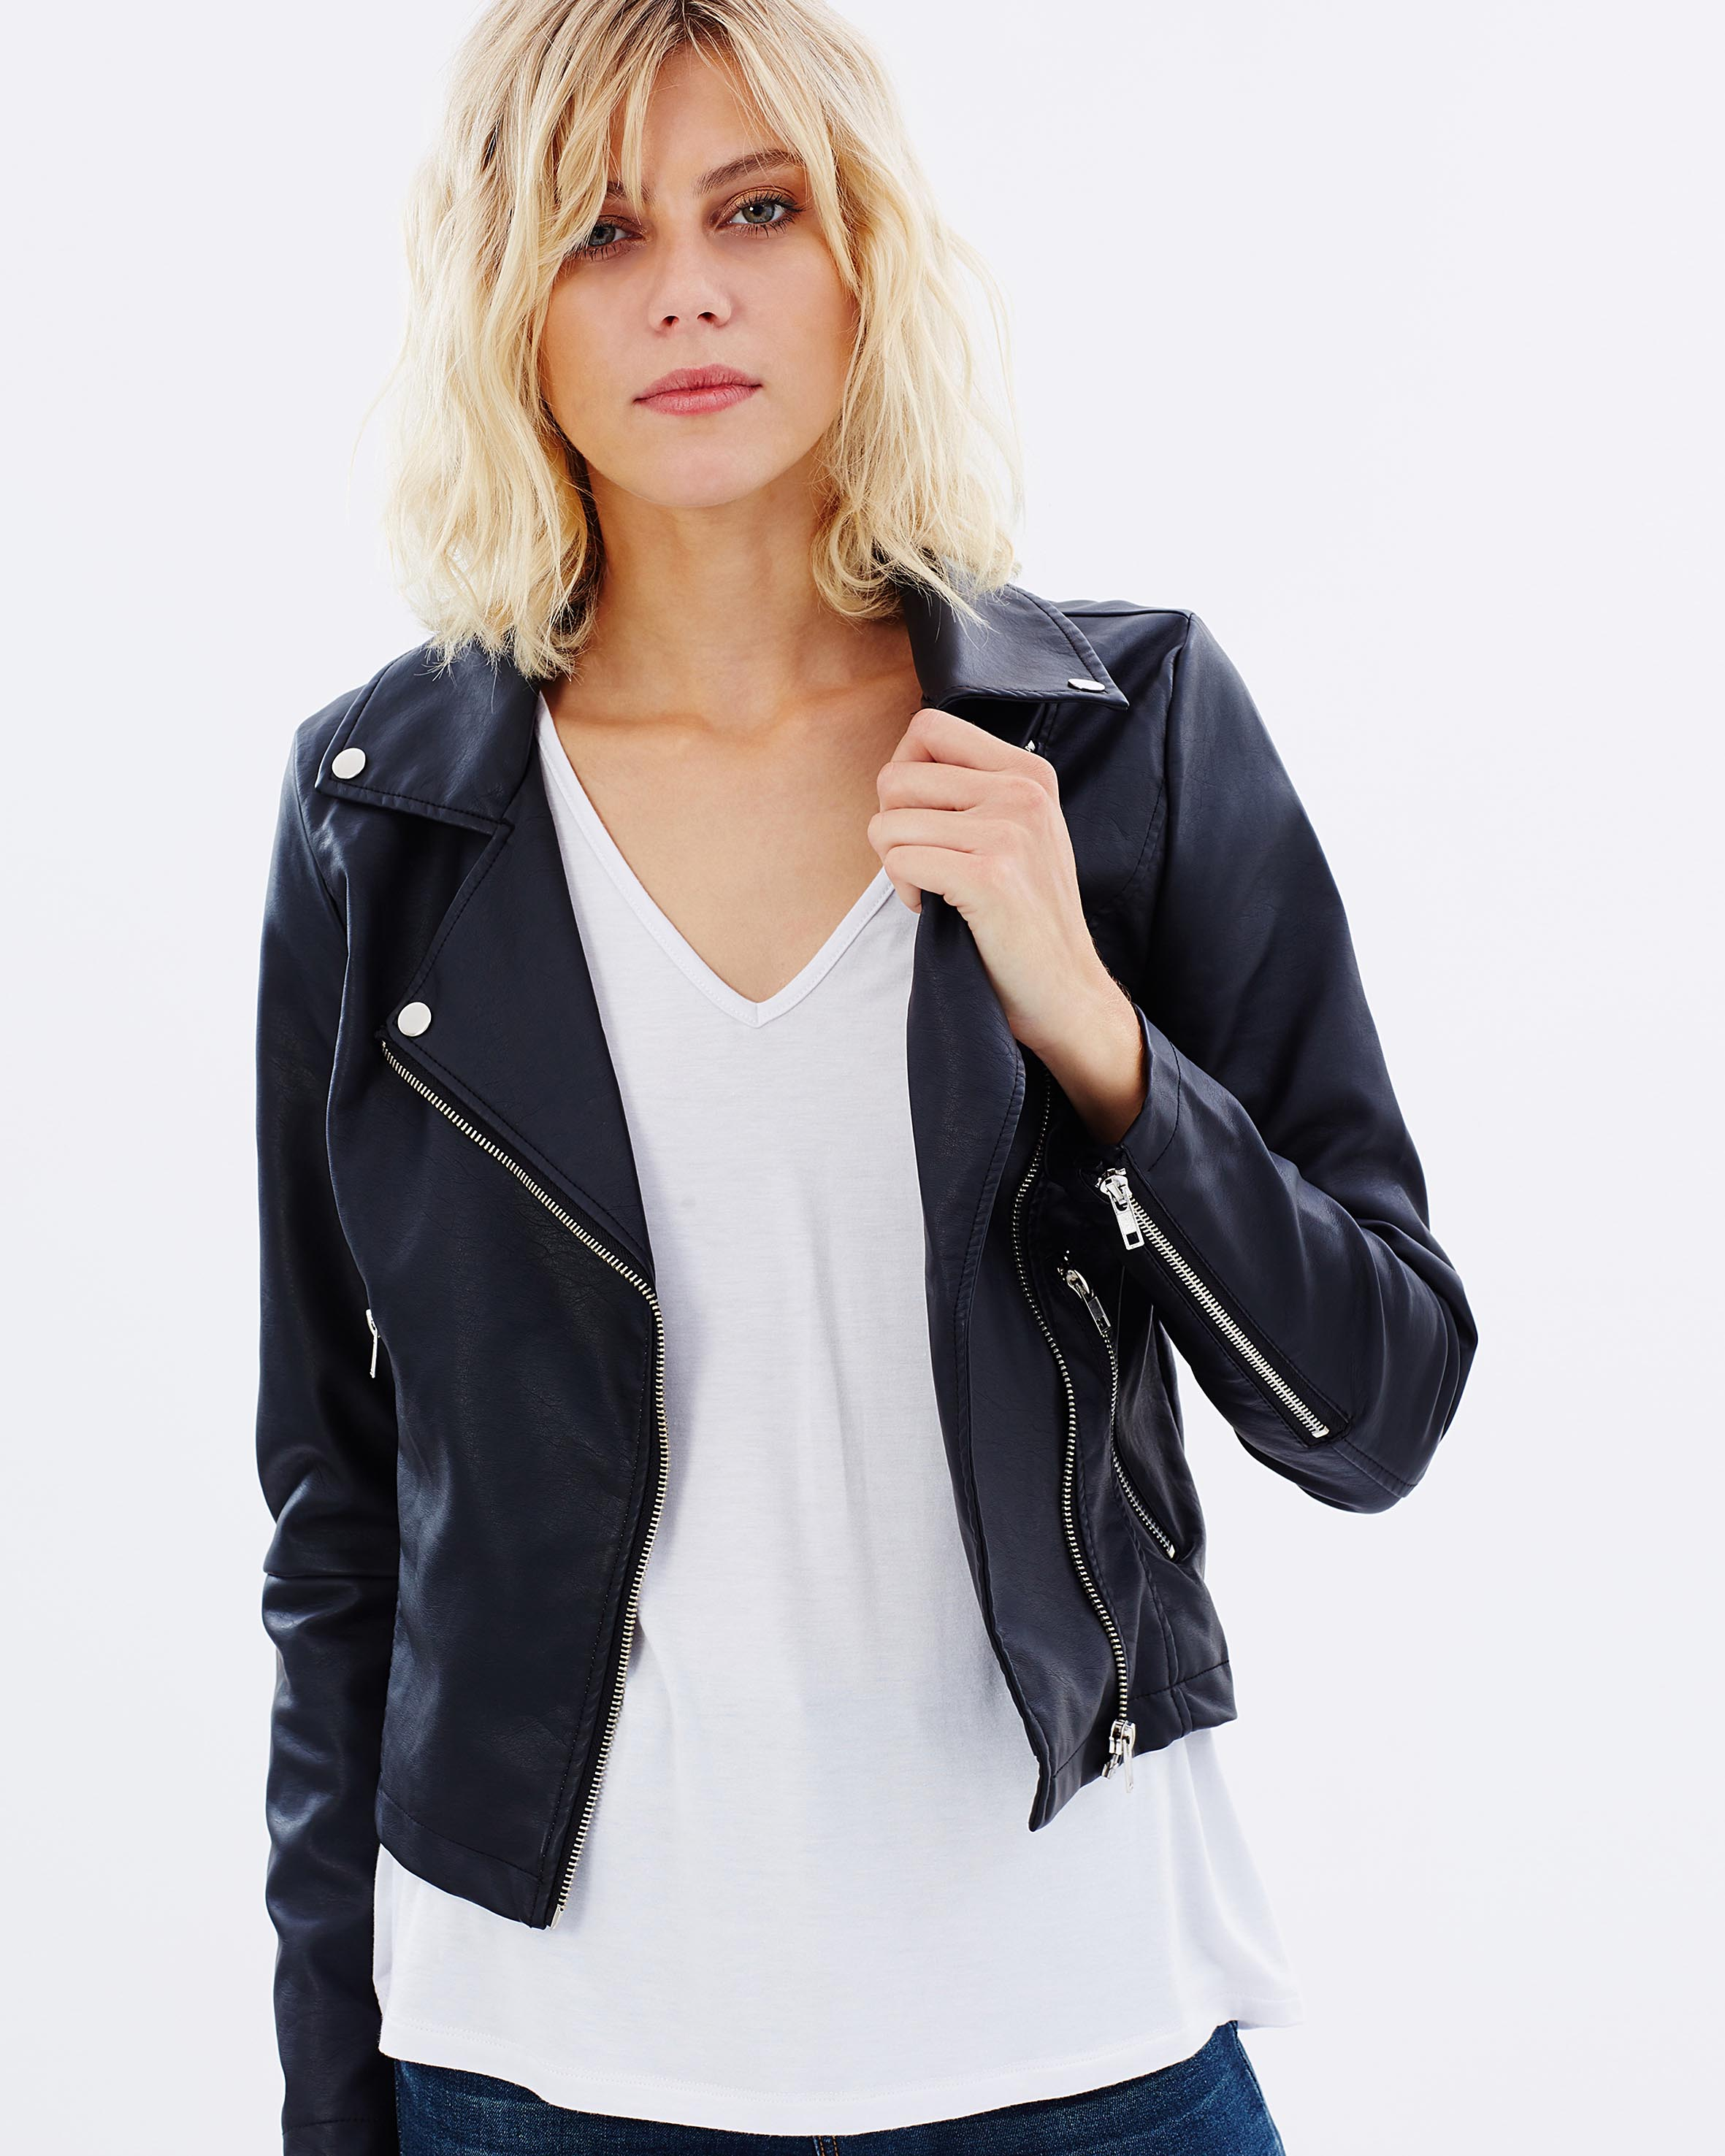 Women jackets online shopping – Plenty of variety Blazers for women – The most easy to wear and sophisticated piece in a woman's wardrobe is a blazer. Blazers for women are staples that work well with both casual wear as well as formal wear.